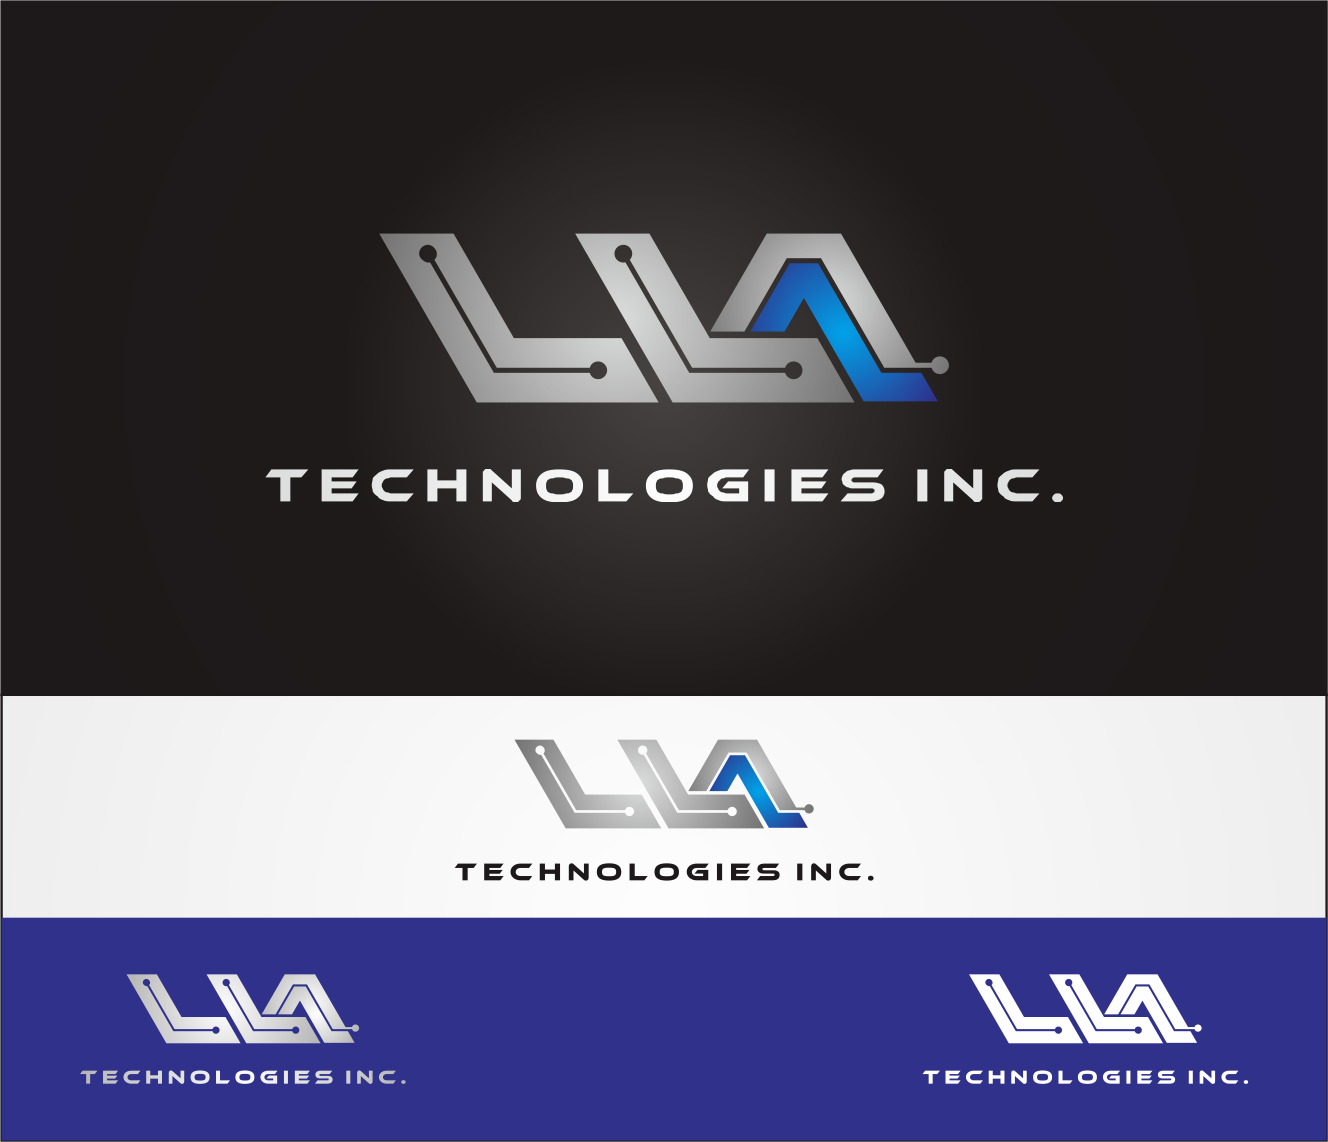 Logo Design by Armada Jamaluddin - Entry No. 139 in the Logo Design Contest Inspiring Logo Design for LLA Technologies Inc..